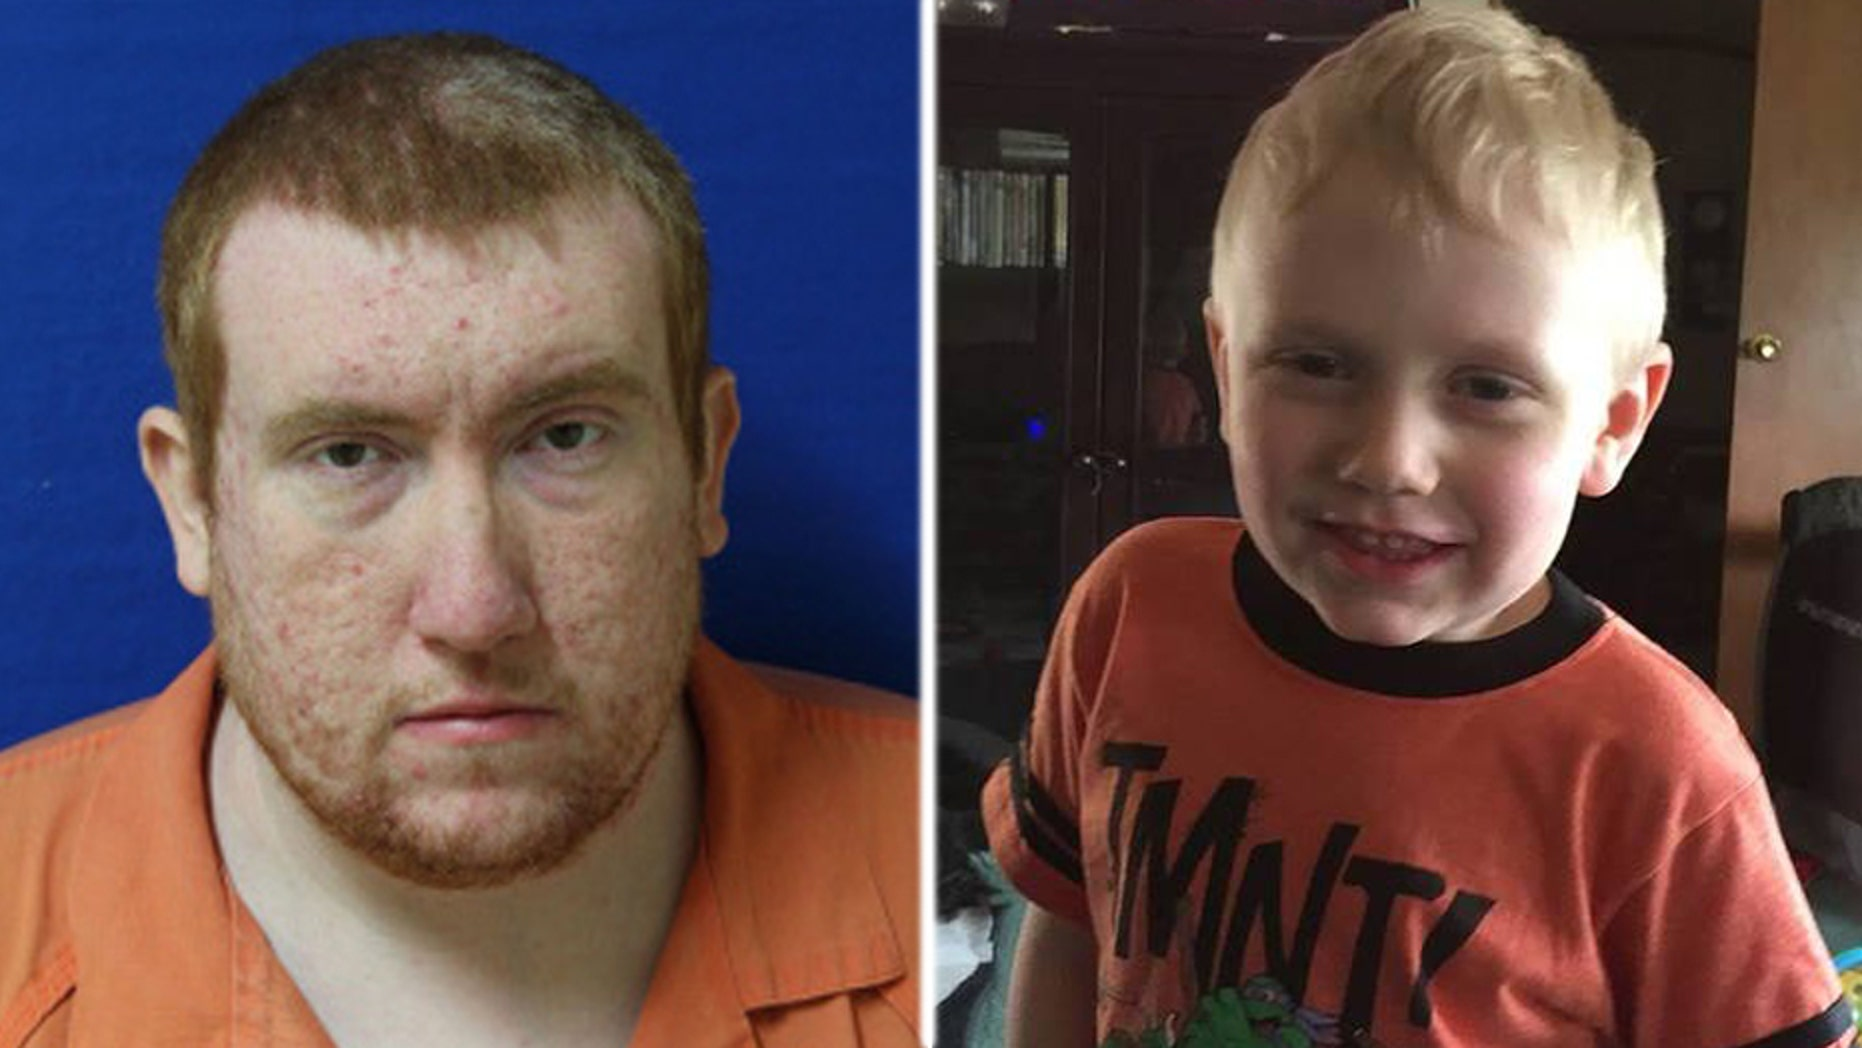 Joseph Daniels, 28, has been charged with the murder of his 5-year-old autistic son, Joe Clyde. Authorities searched for the boy for three days this week after he was reported missing.